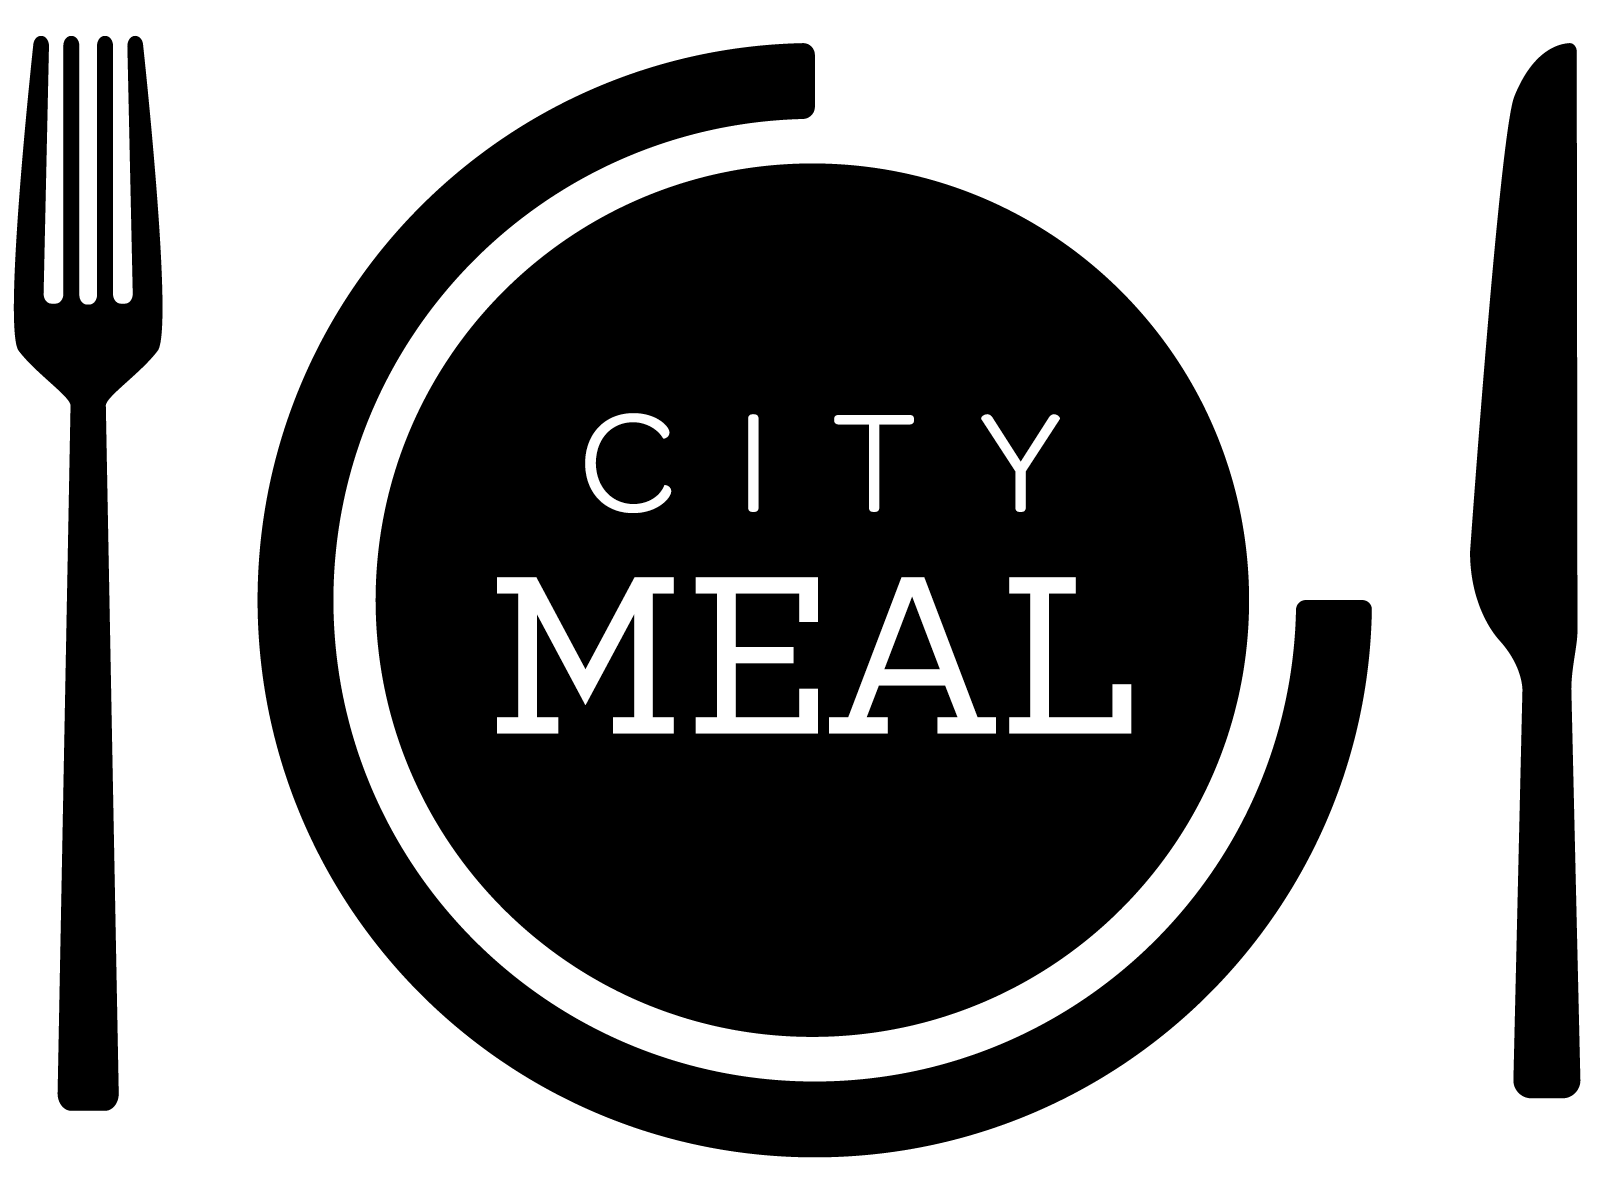 City_Meal_Logo 1.png